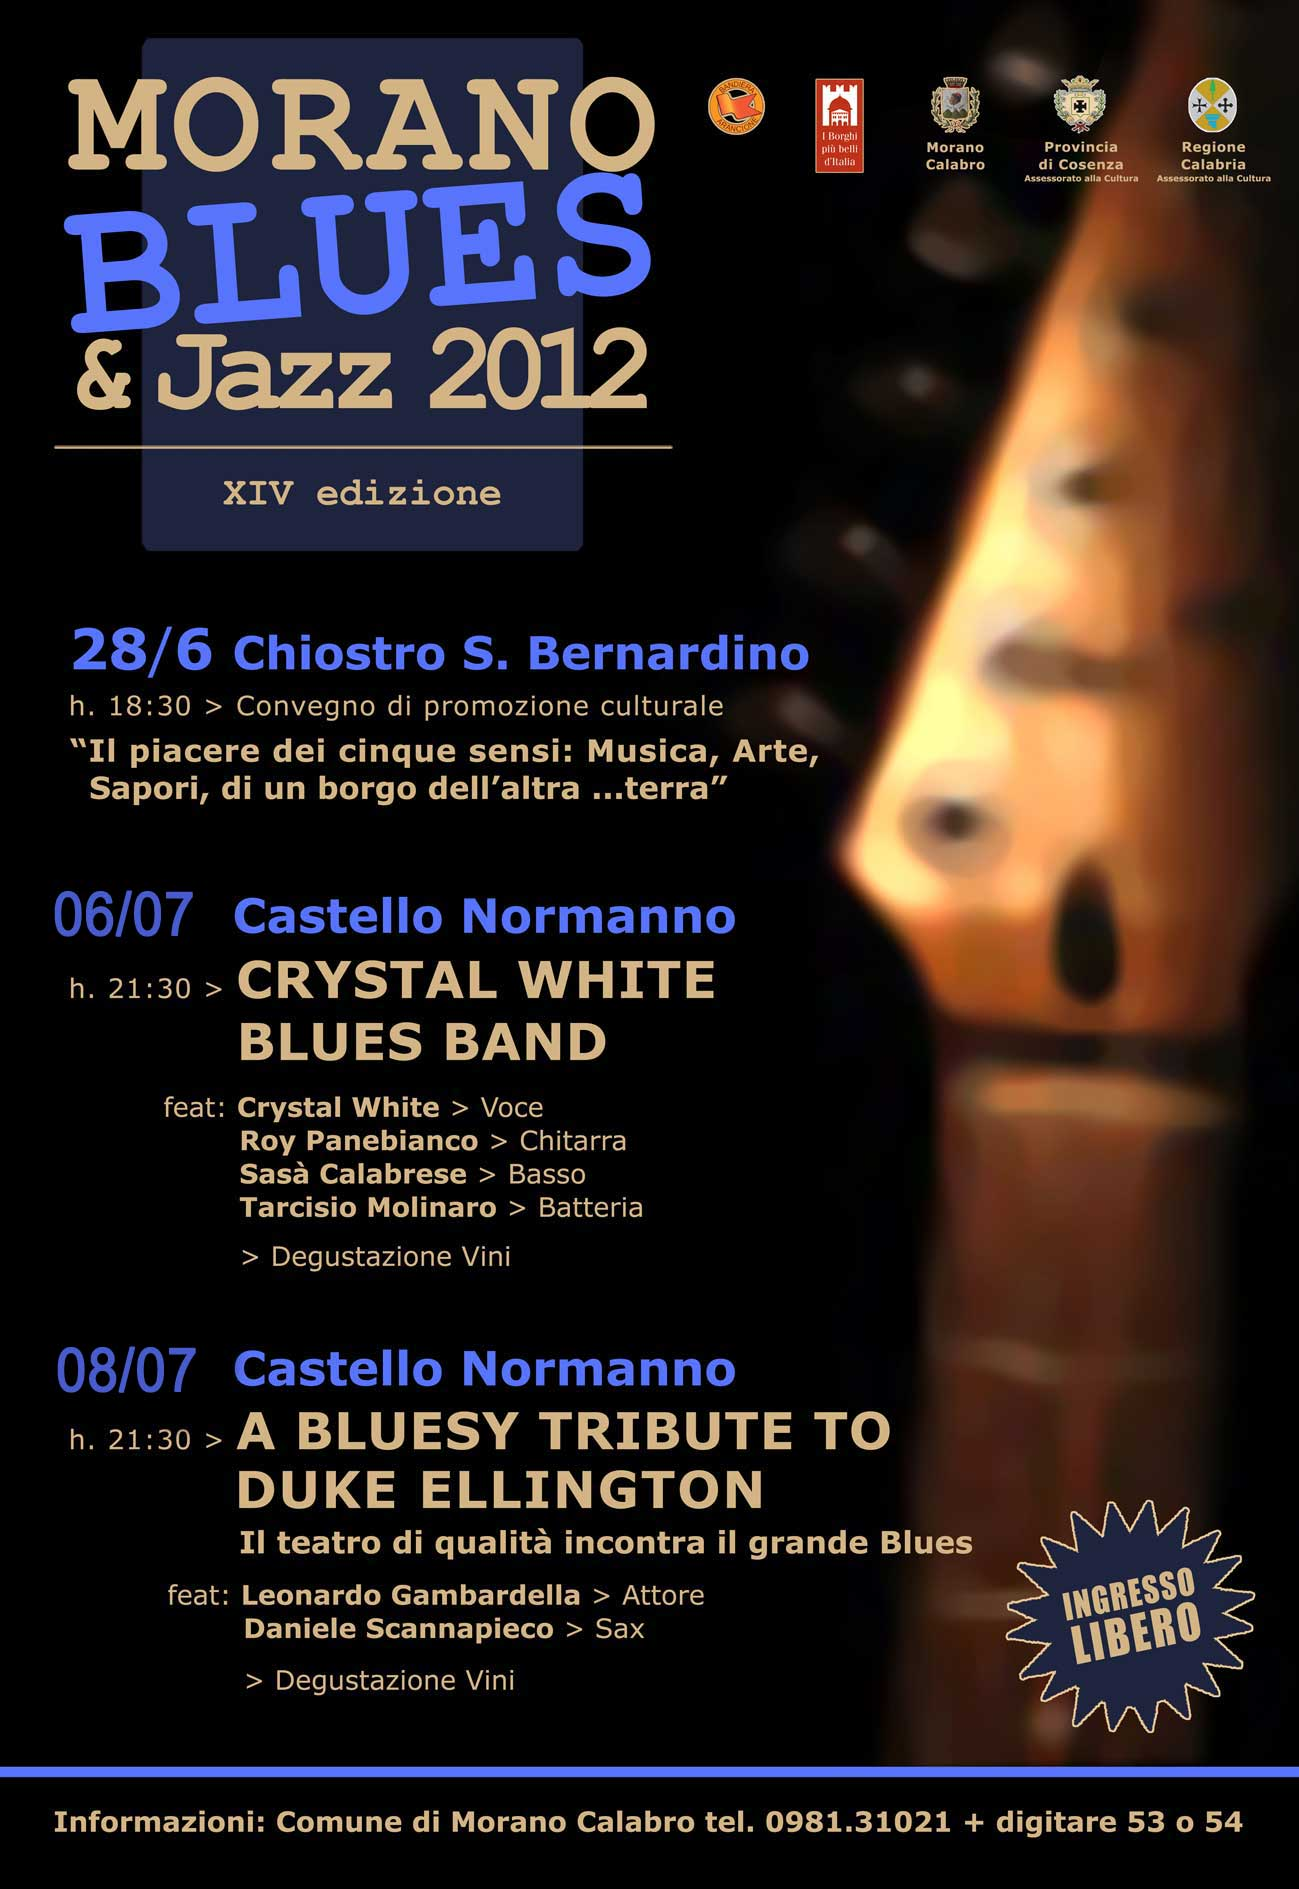 Morano Blues & Jazz